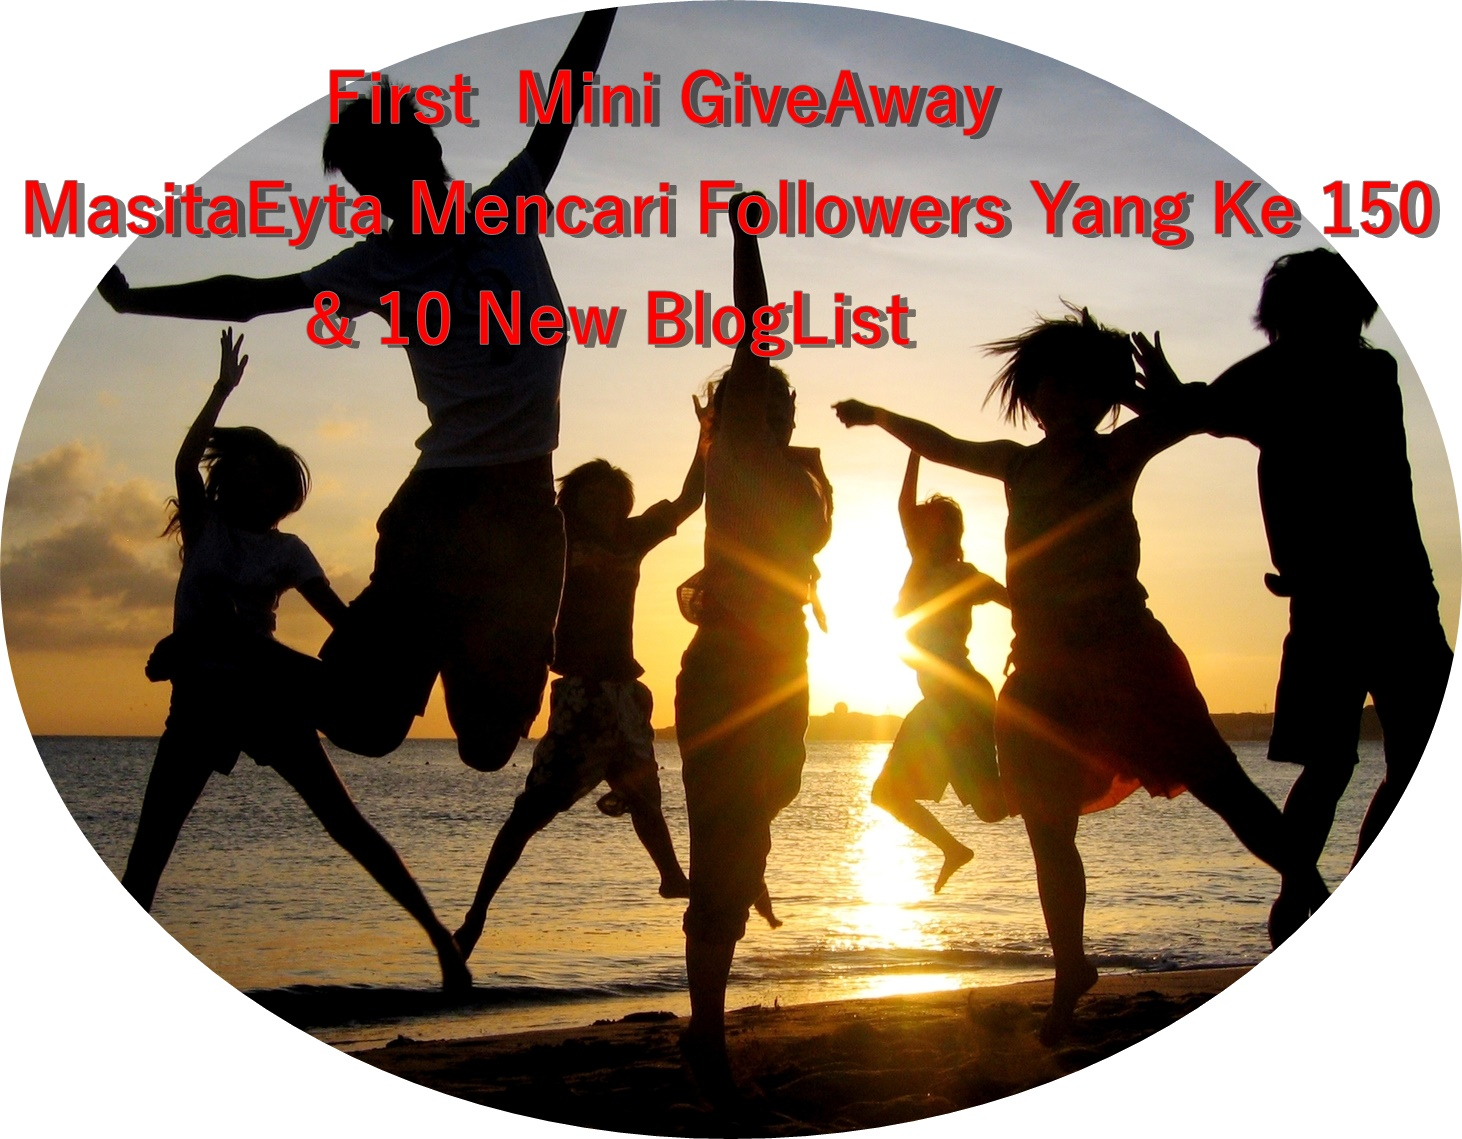 First Mini GiveAway MasitaEyta Mencari Followers Yang ke 150 & 10 New Bloglist